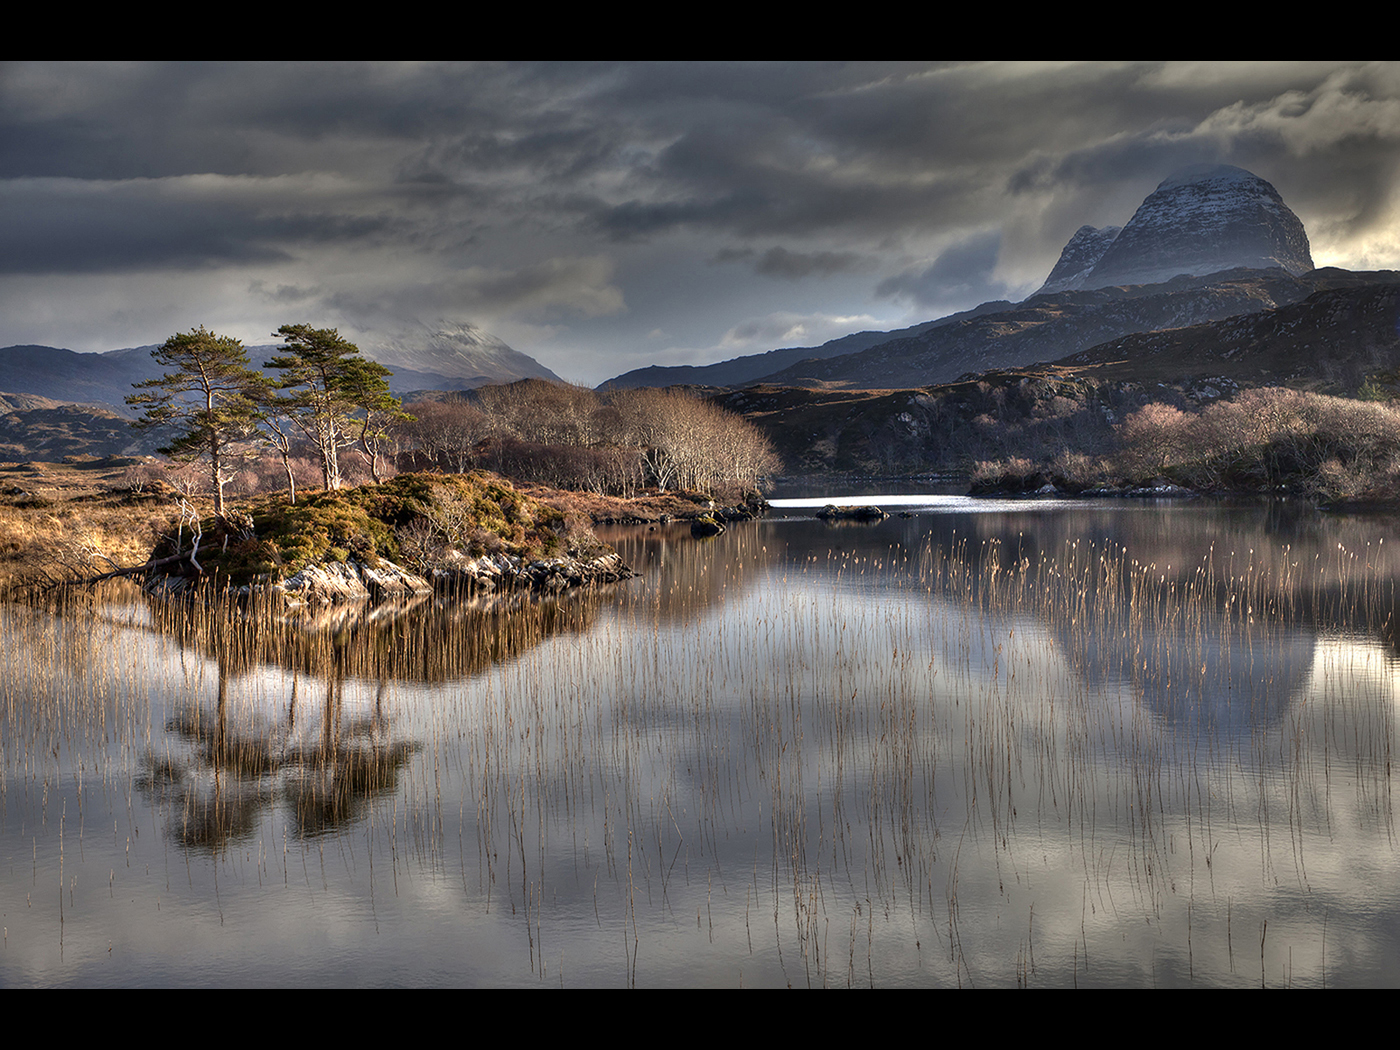 Suilven mountain view